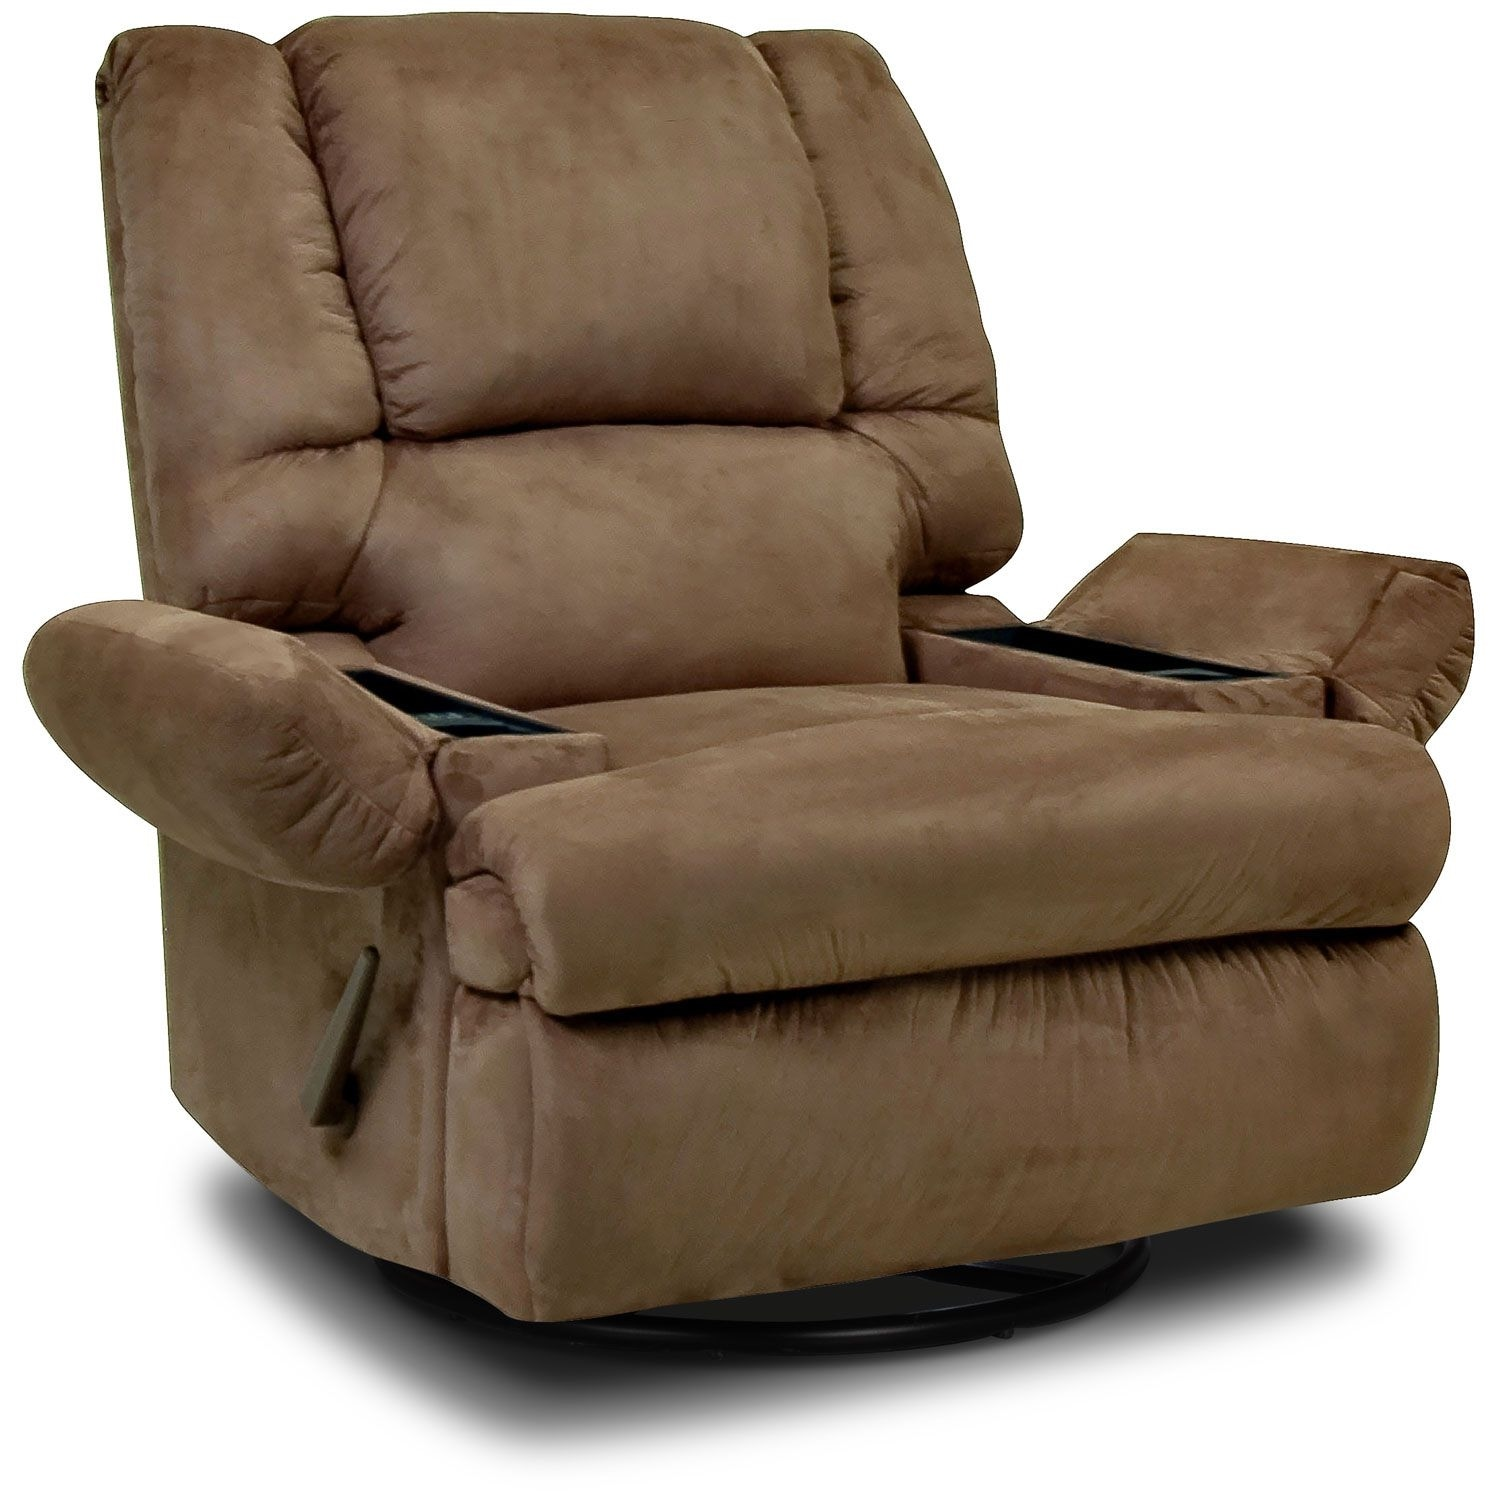 Designed2B Recliner 5598 Padded Suede Swivel Rocker with Storage Arms - Mocha